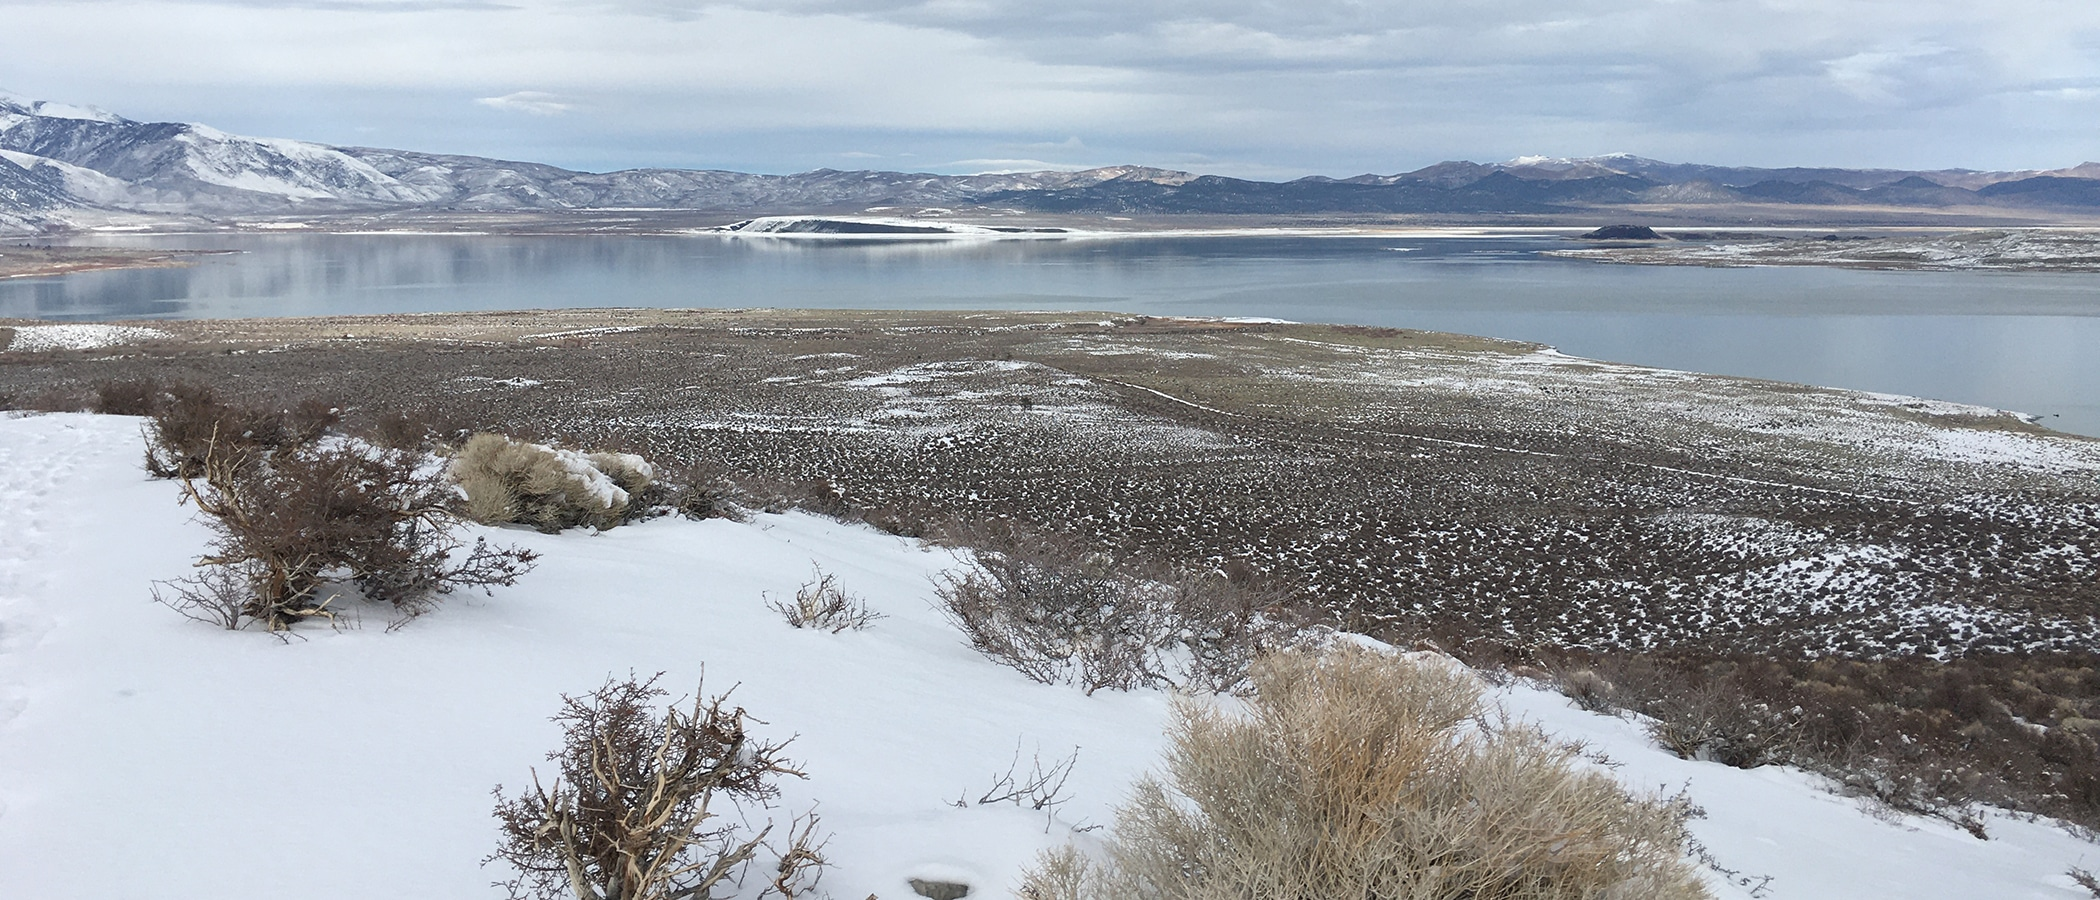 The view from Panum crater shows the snow speckled shore and the snow covered islands in the blue-gray Mono Lake water.